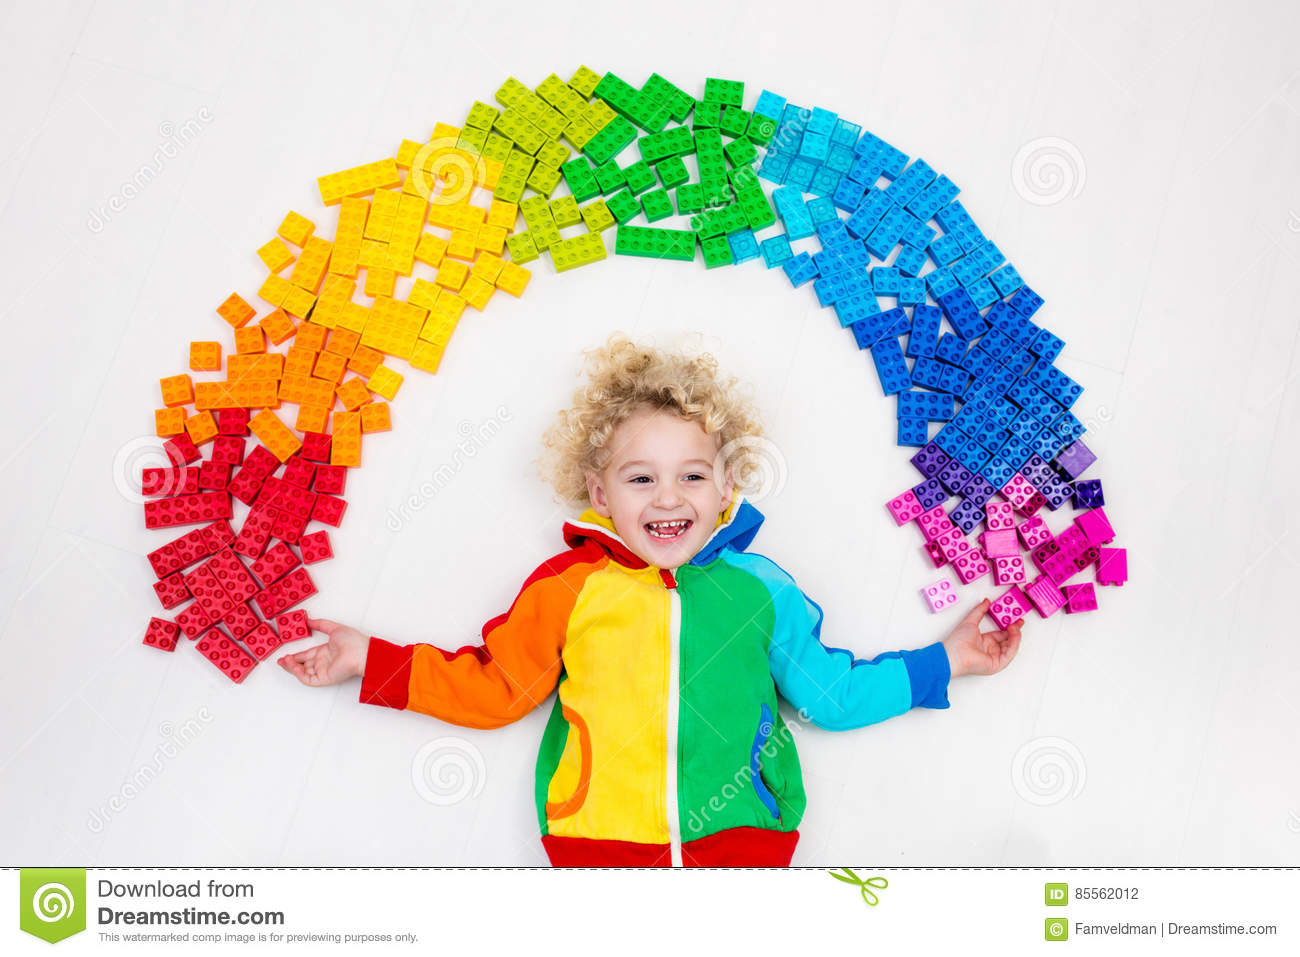 233d68d814bf Child Playing With Rainbow Plastic Blocks Toy Stock Photo - Image of ...